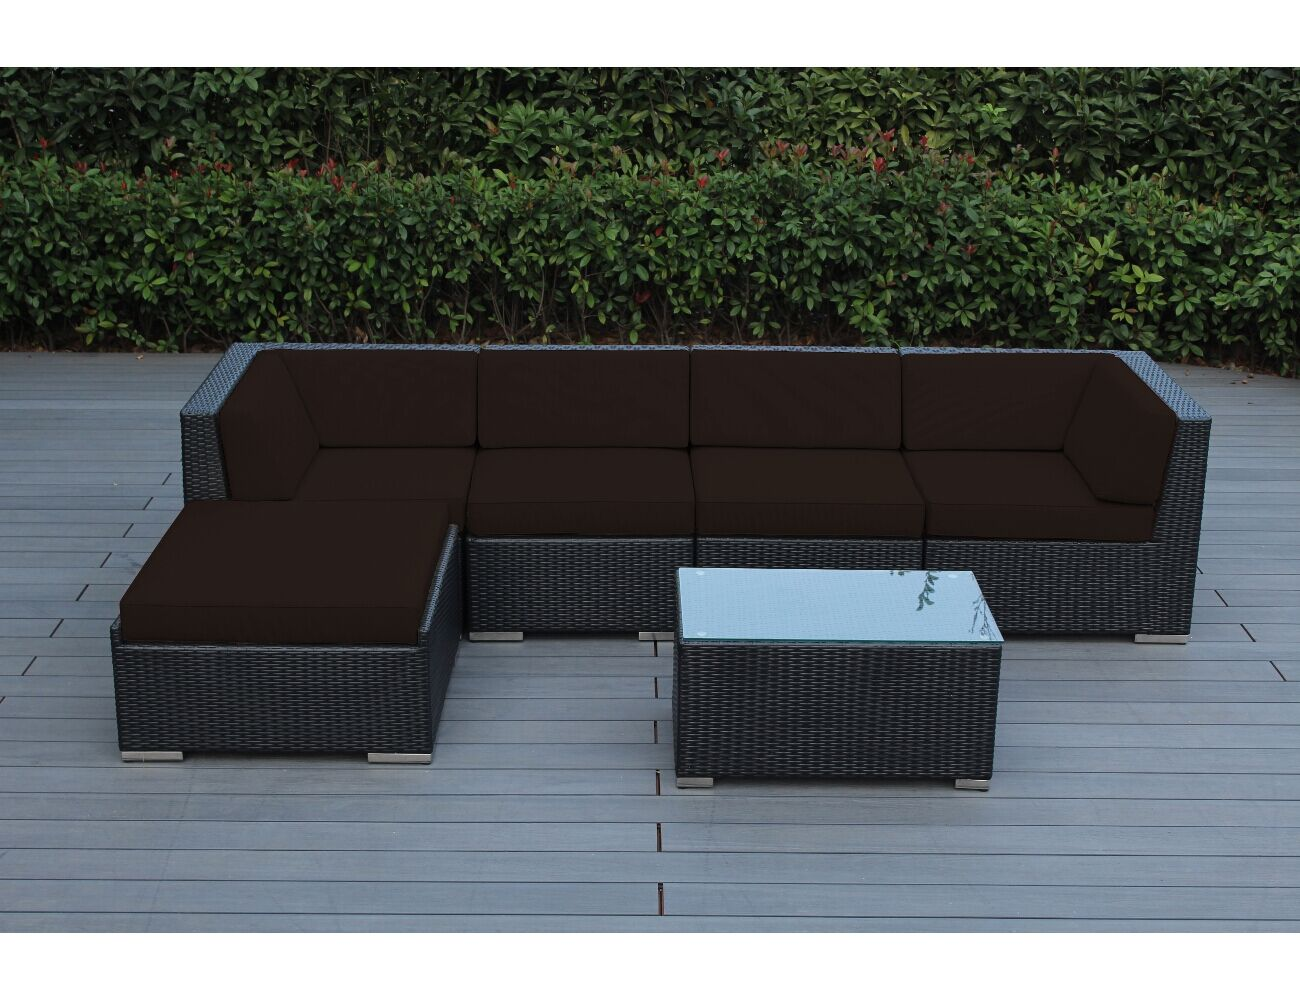 Baril 6 Piece Sectional Set with Cushions Frame Finish: Black, Cushion Color: Brown